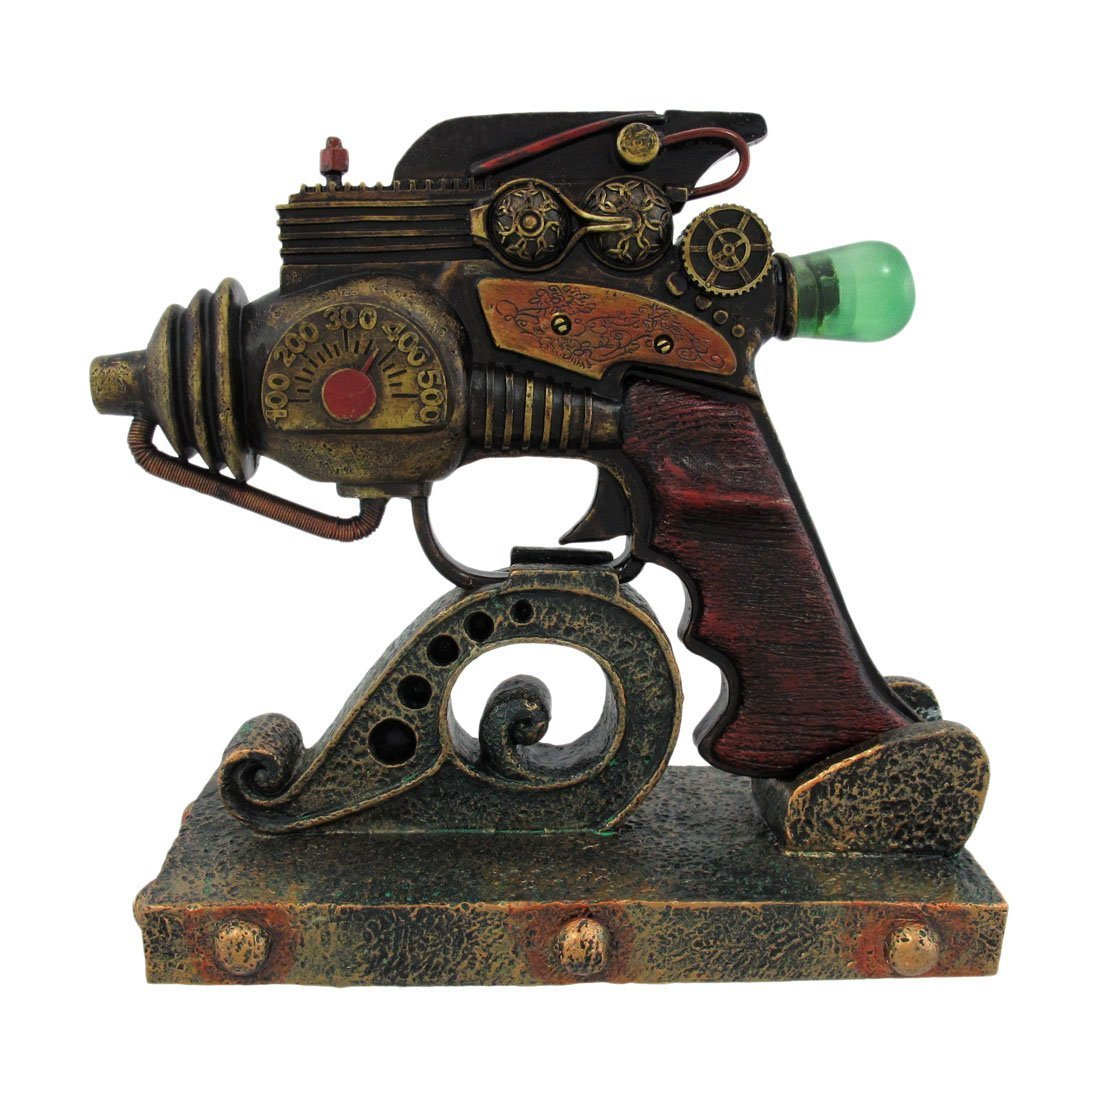 PTC 5.5 Inch The Consolidator Steampunk Inspired Weapon Statue Figurine